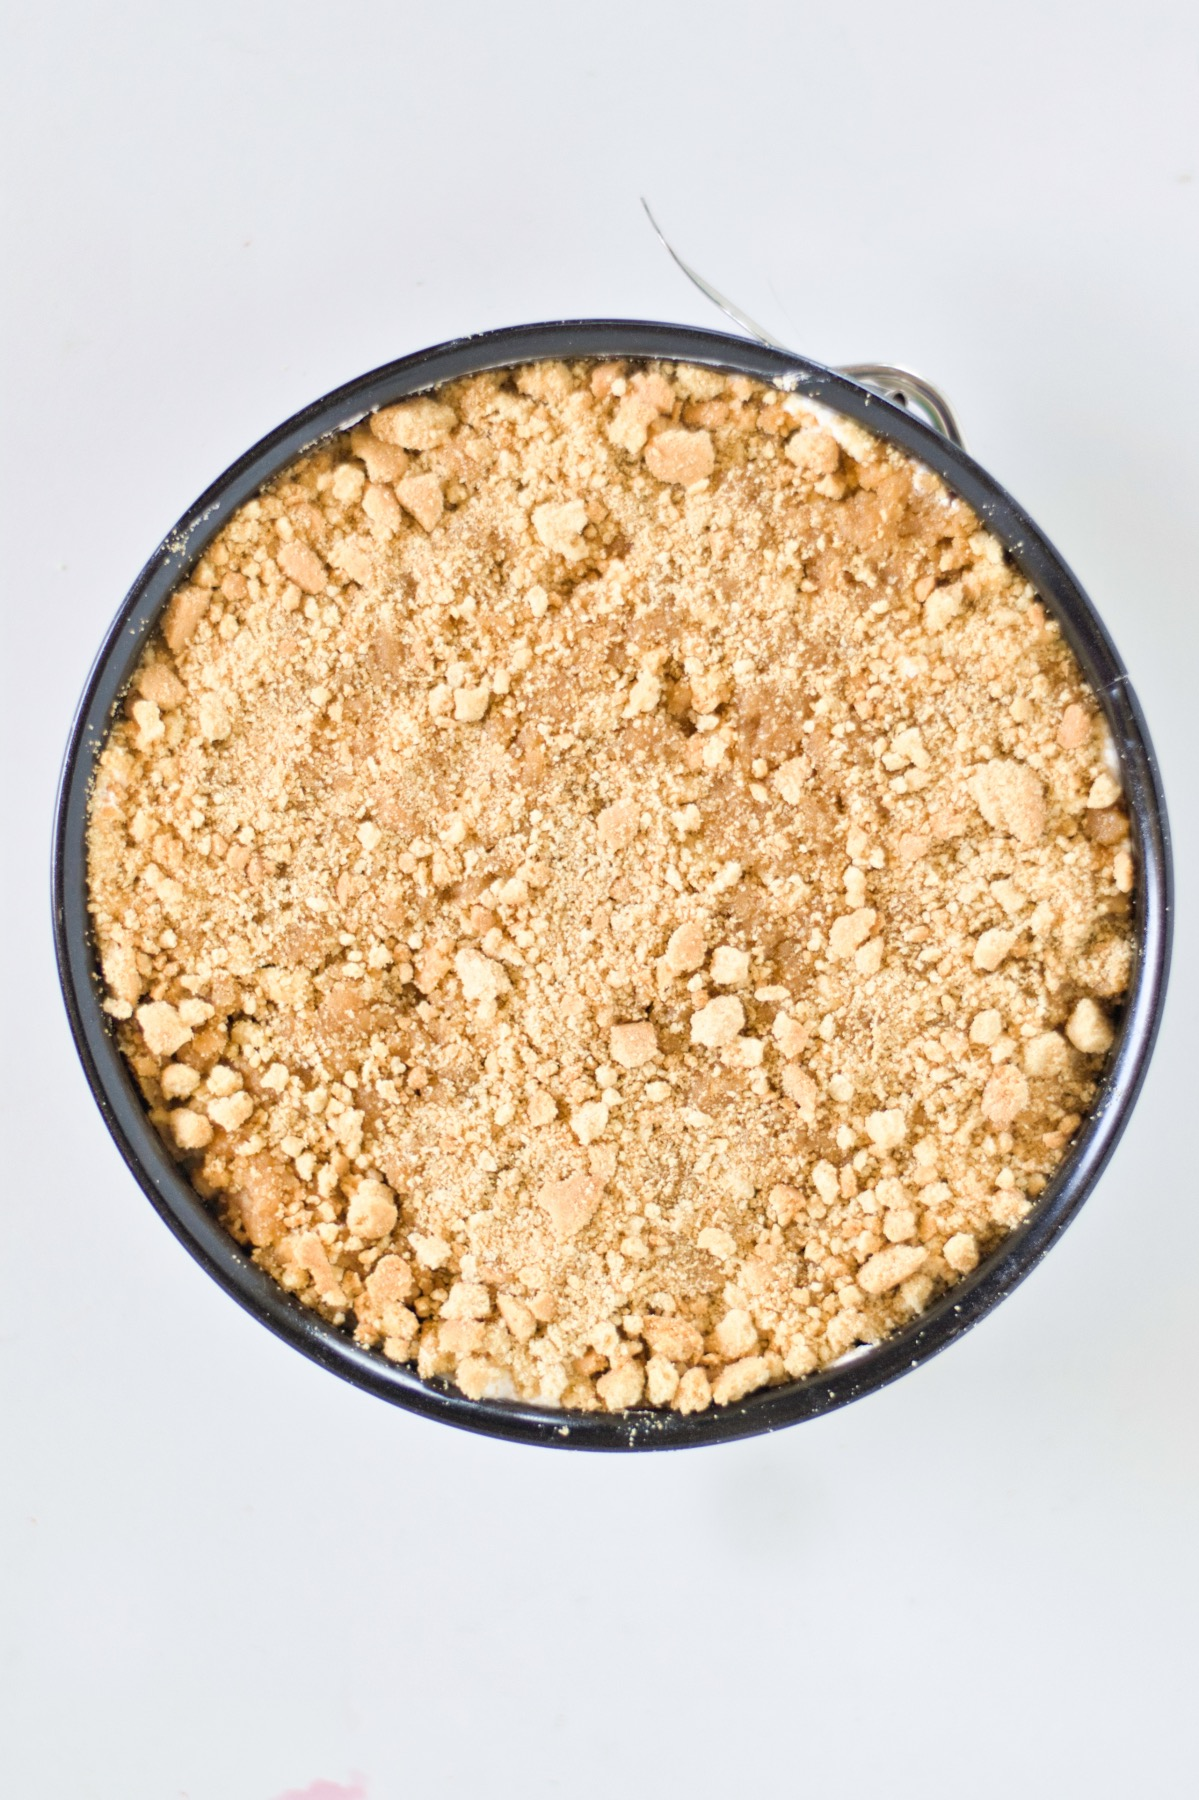 add the crumble topping to the strawberry cream crumble